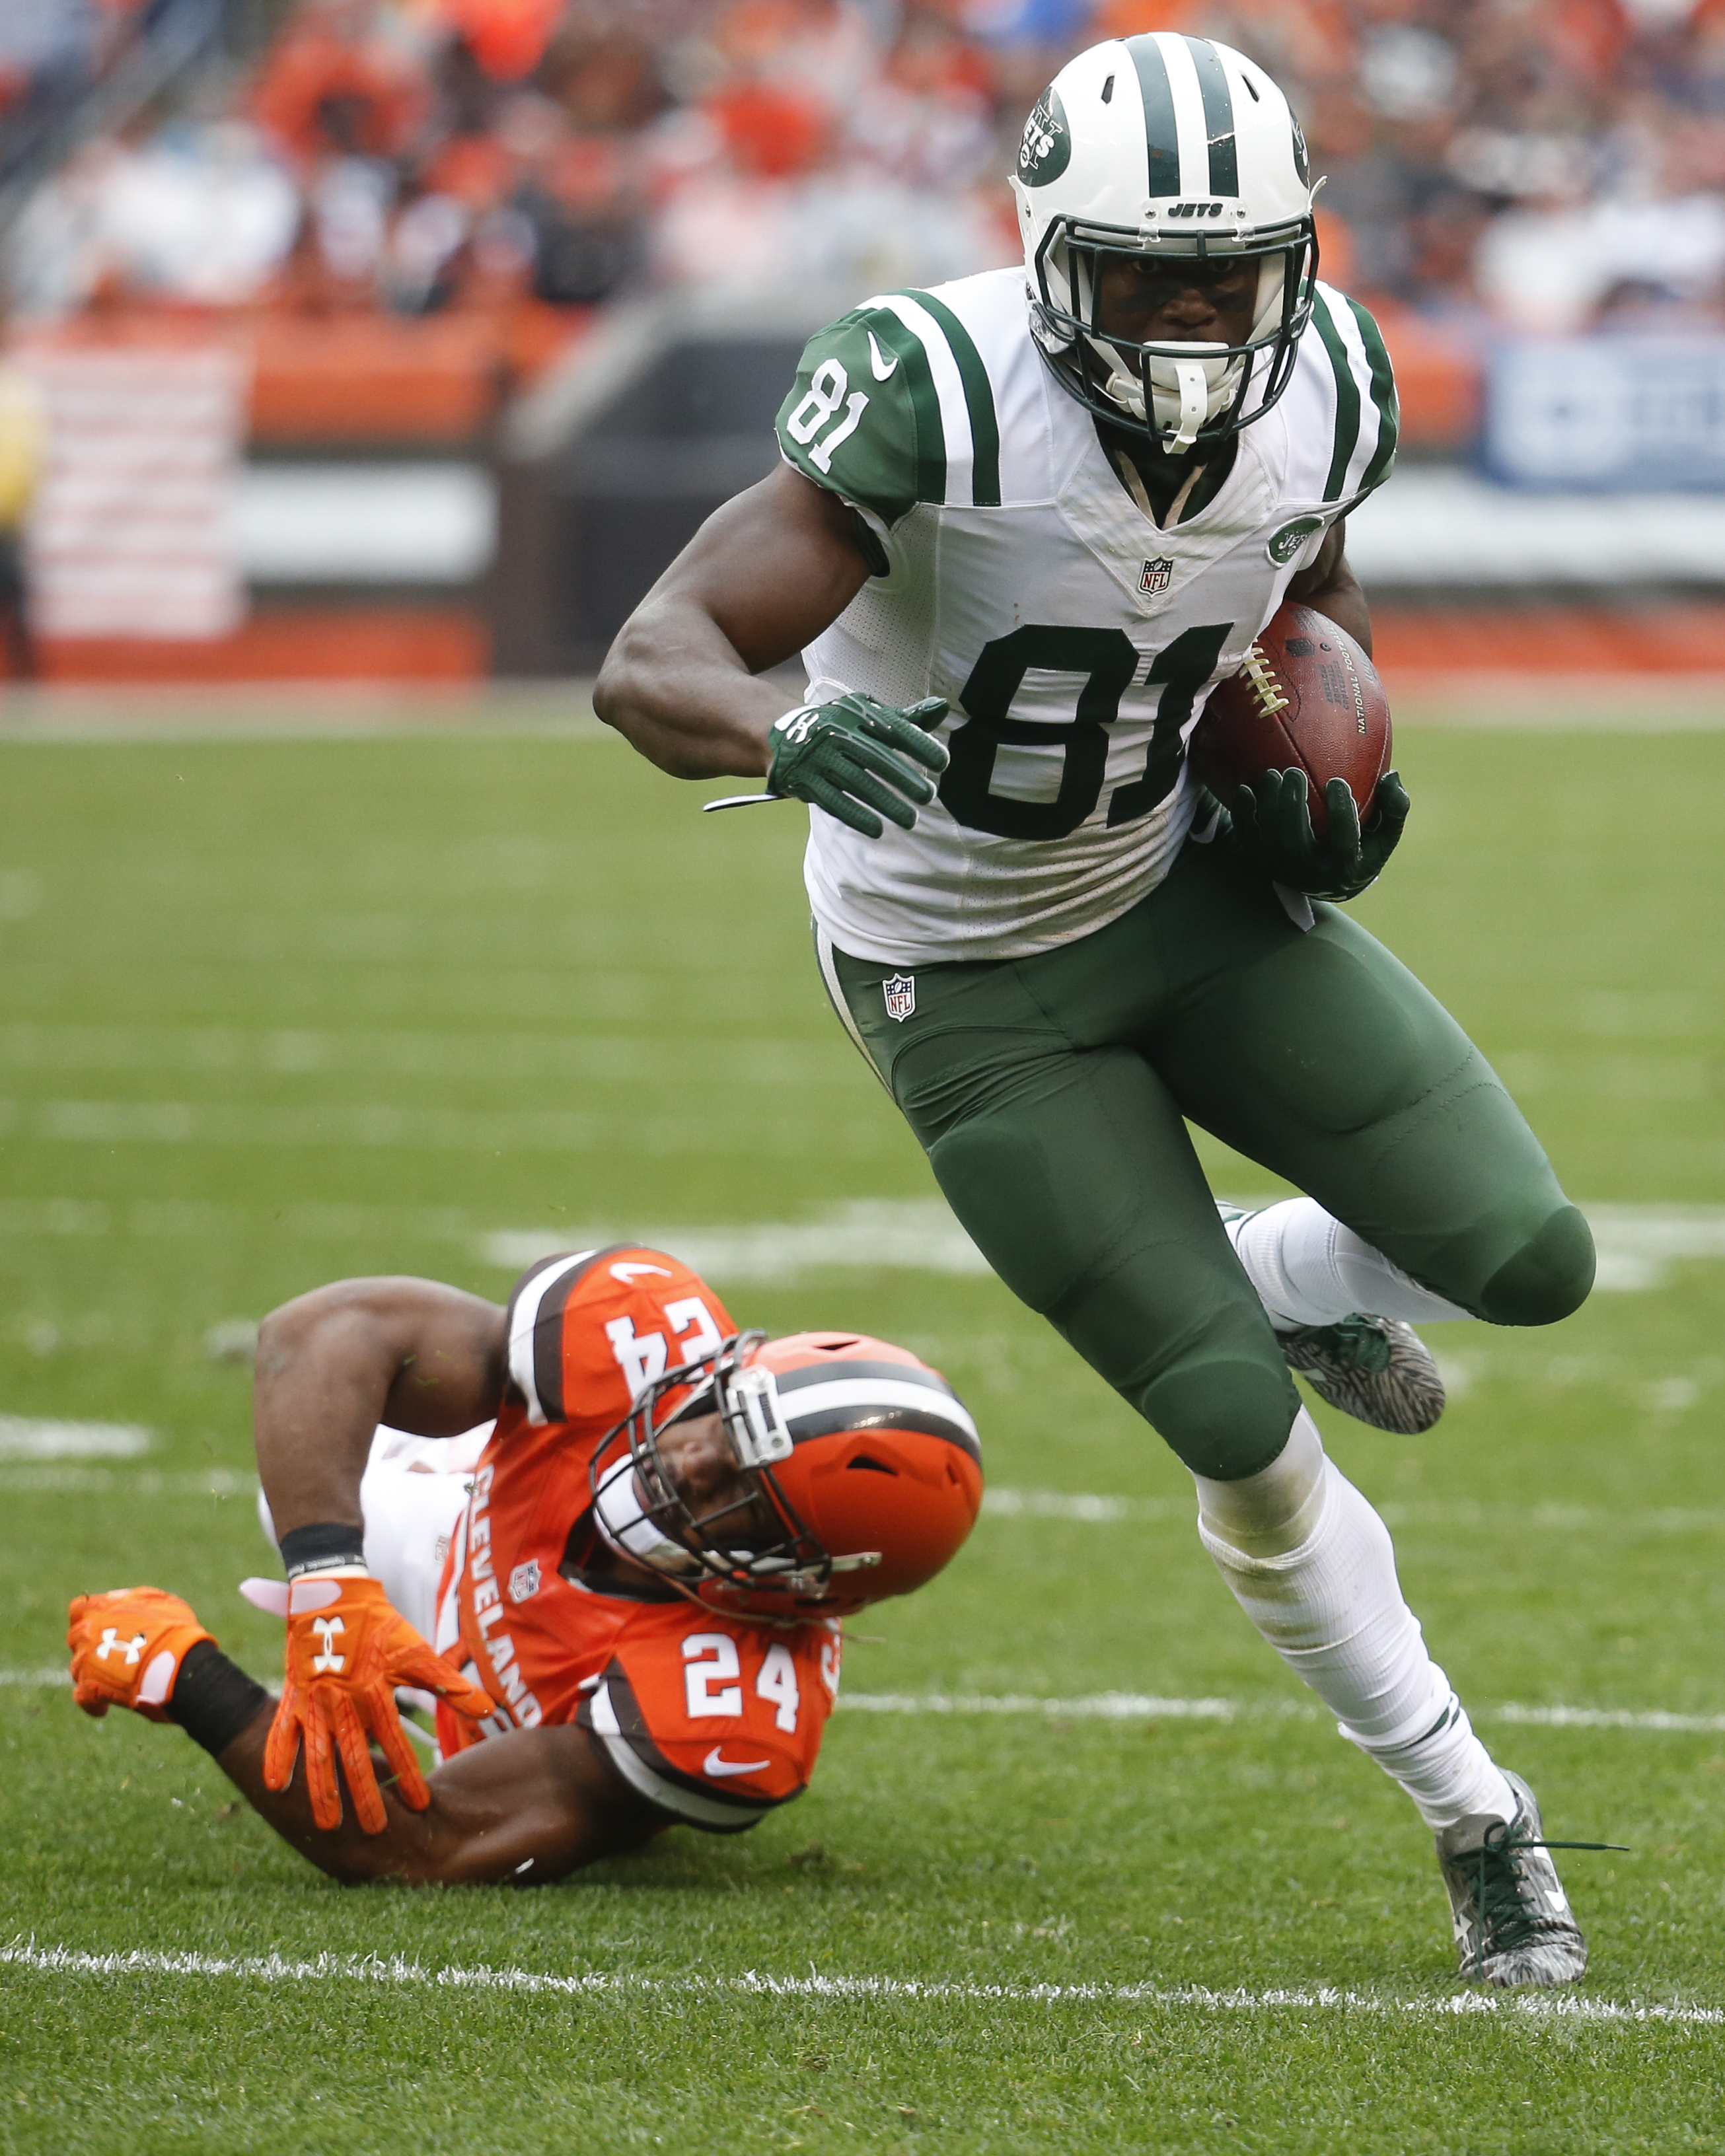 FILE - In this Oct. 30, 2016, file photo, New York Jets wide receiver Quincy Enunwa (81) breaks away from Cleveland Browns strong safety Ibraheim Campbell, left, on a touchdown run in the second half of an NFL football game, in Cleveland. The 2014 sixth-r